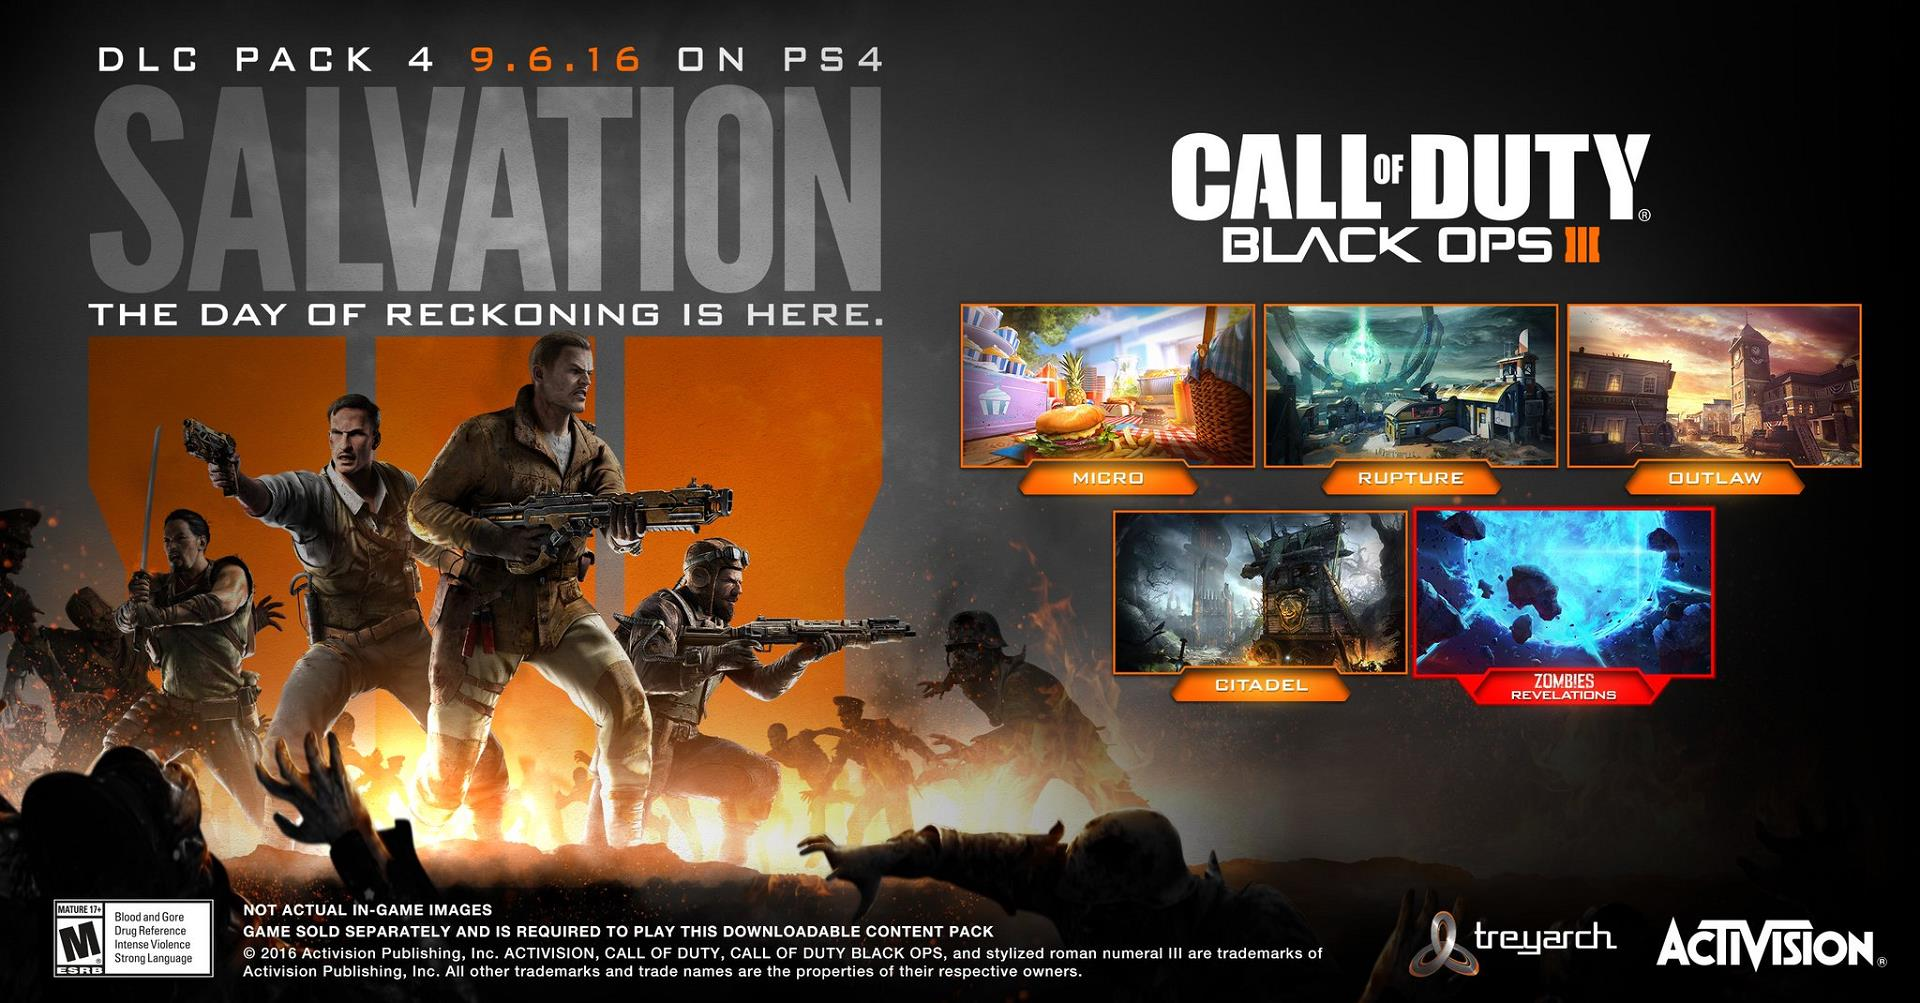 call of duty world at war map packs with Call Of Duty Black Ops Iii Previews Final Dlc And Zombies Conclusion on Call Of Duty Black Ops Iii Previews Final Dlc And Zombies Conclusion besides Devastation together with Minecraft Xbox 360 Edition Halo Mash Arrives Tomorrow New Trailer in addition Fuck Gifs as well El Ultimo Dlc De Call Of Duty Black Ops Ii Ya Tiene Fecha Para Ps3 Y Pc.